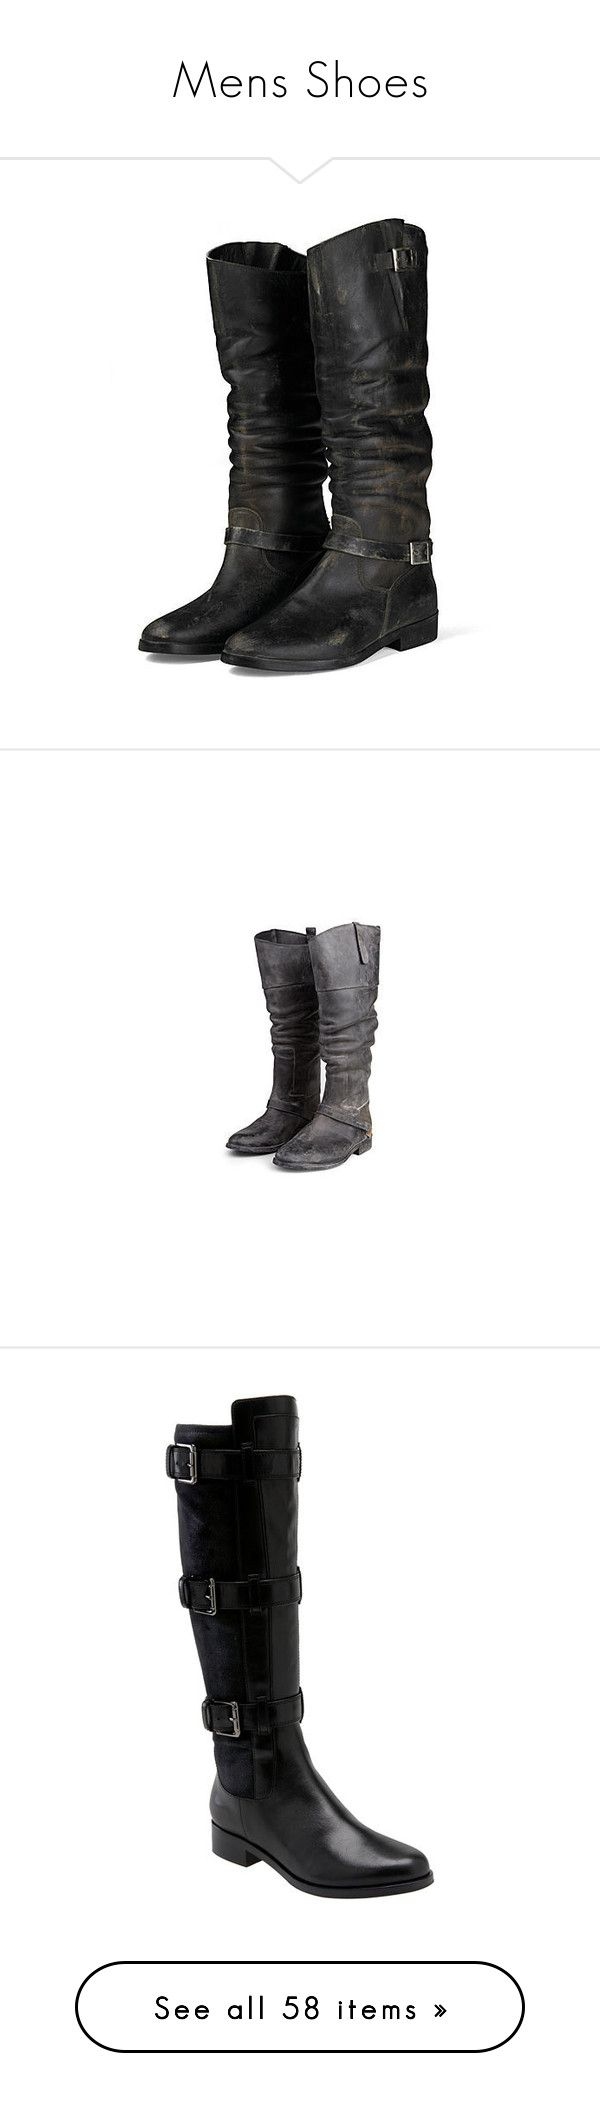 """Mens Shoes"" by cujokitten ❤ liked on Polyvore featuring shoes, boots, botas, black, sapatos, black riding boots, riding boots, real leather riding boots, black low heel boots and low heel boots"